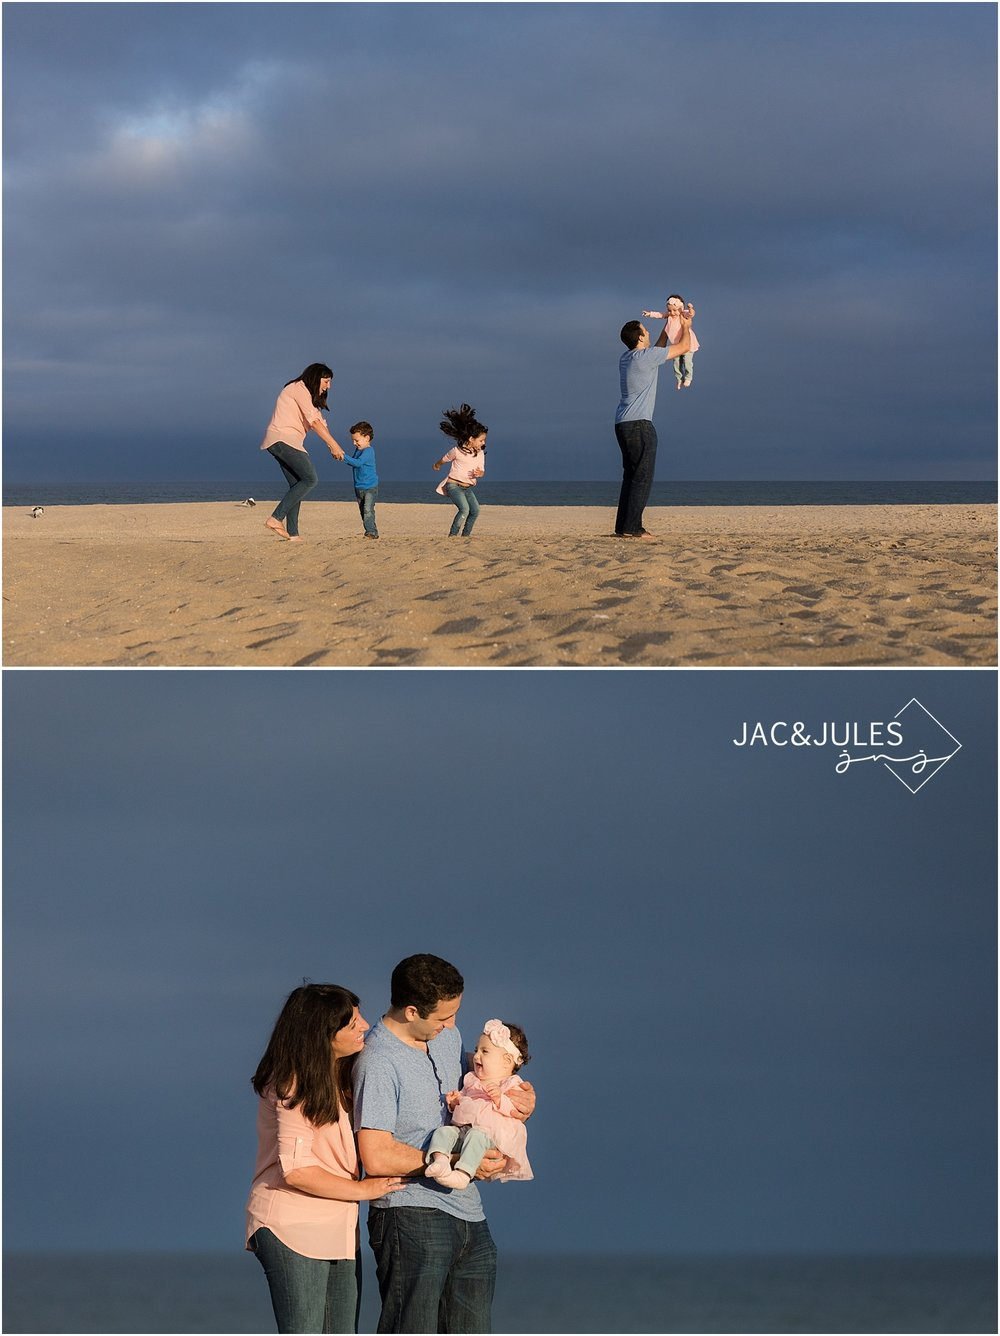 jacnjules photographs family before a thunderstorm in point pleasant nj